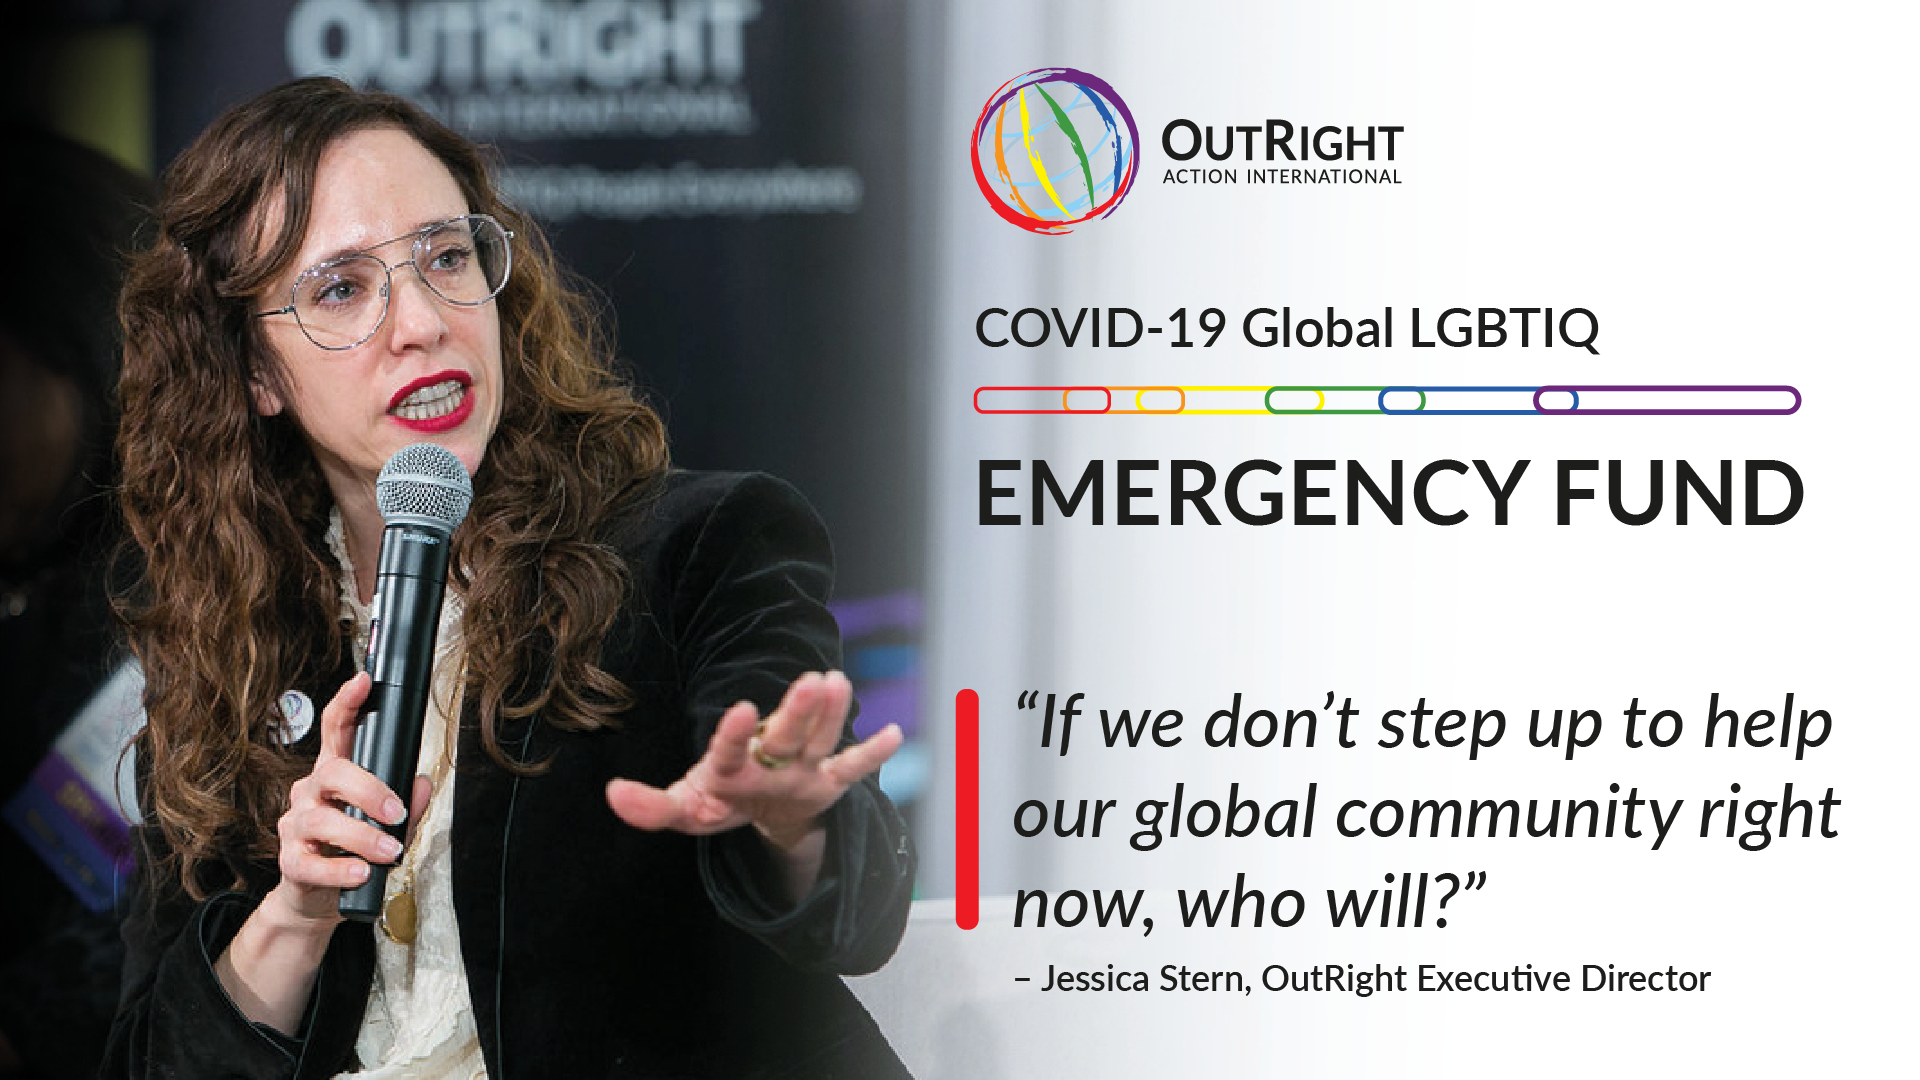 jessica stern, executive director outright